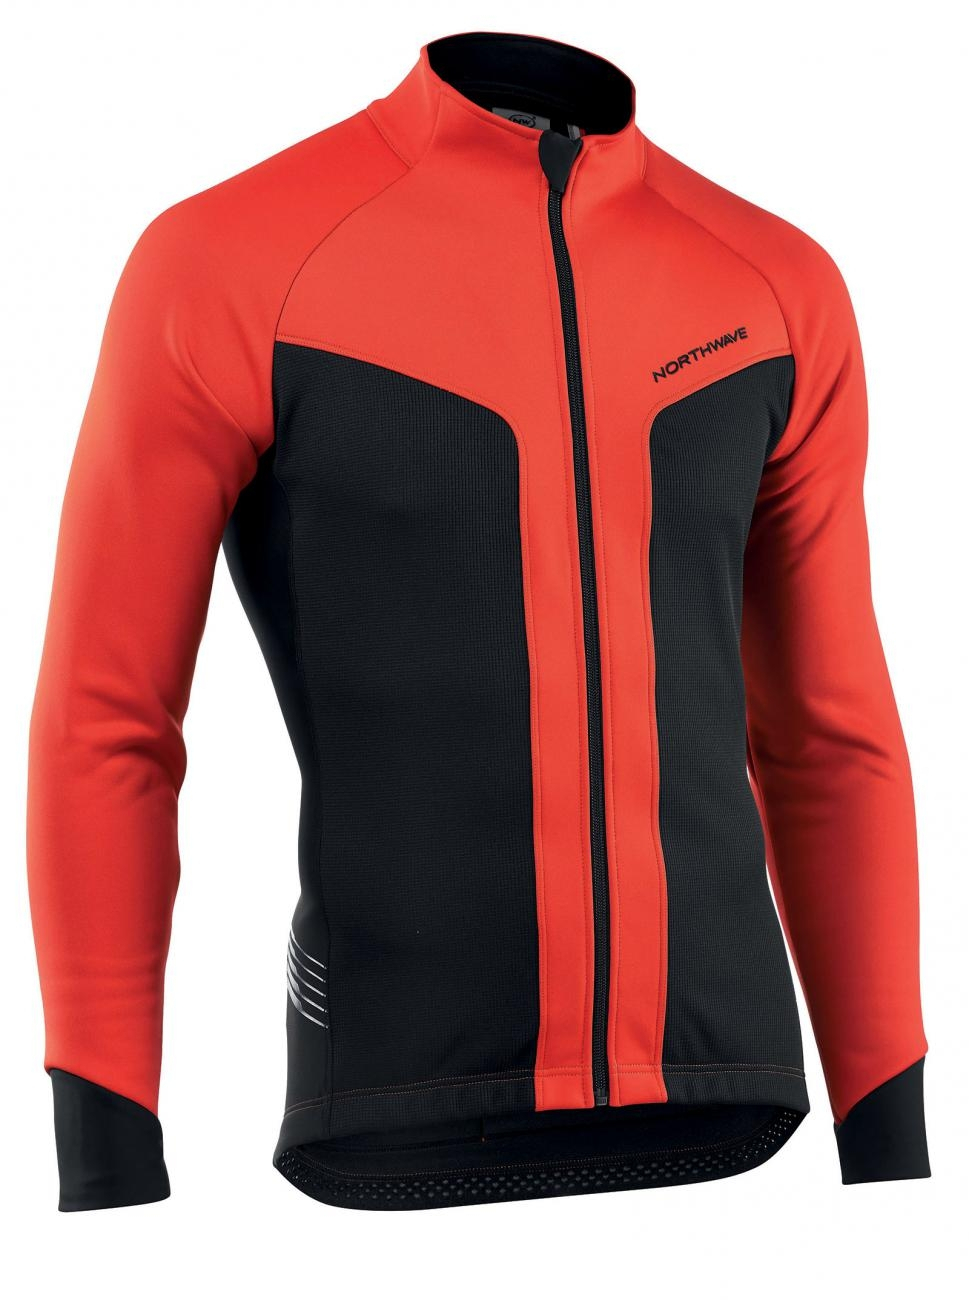 NORTHWAVE Man cycling jacket RELOAD - selective protection red/black